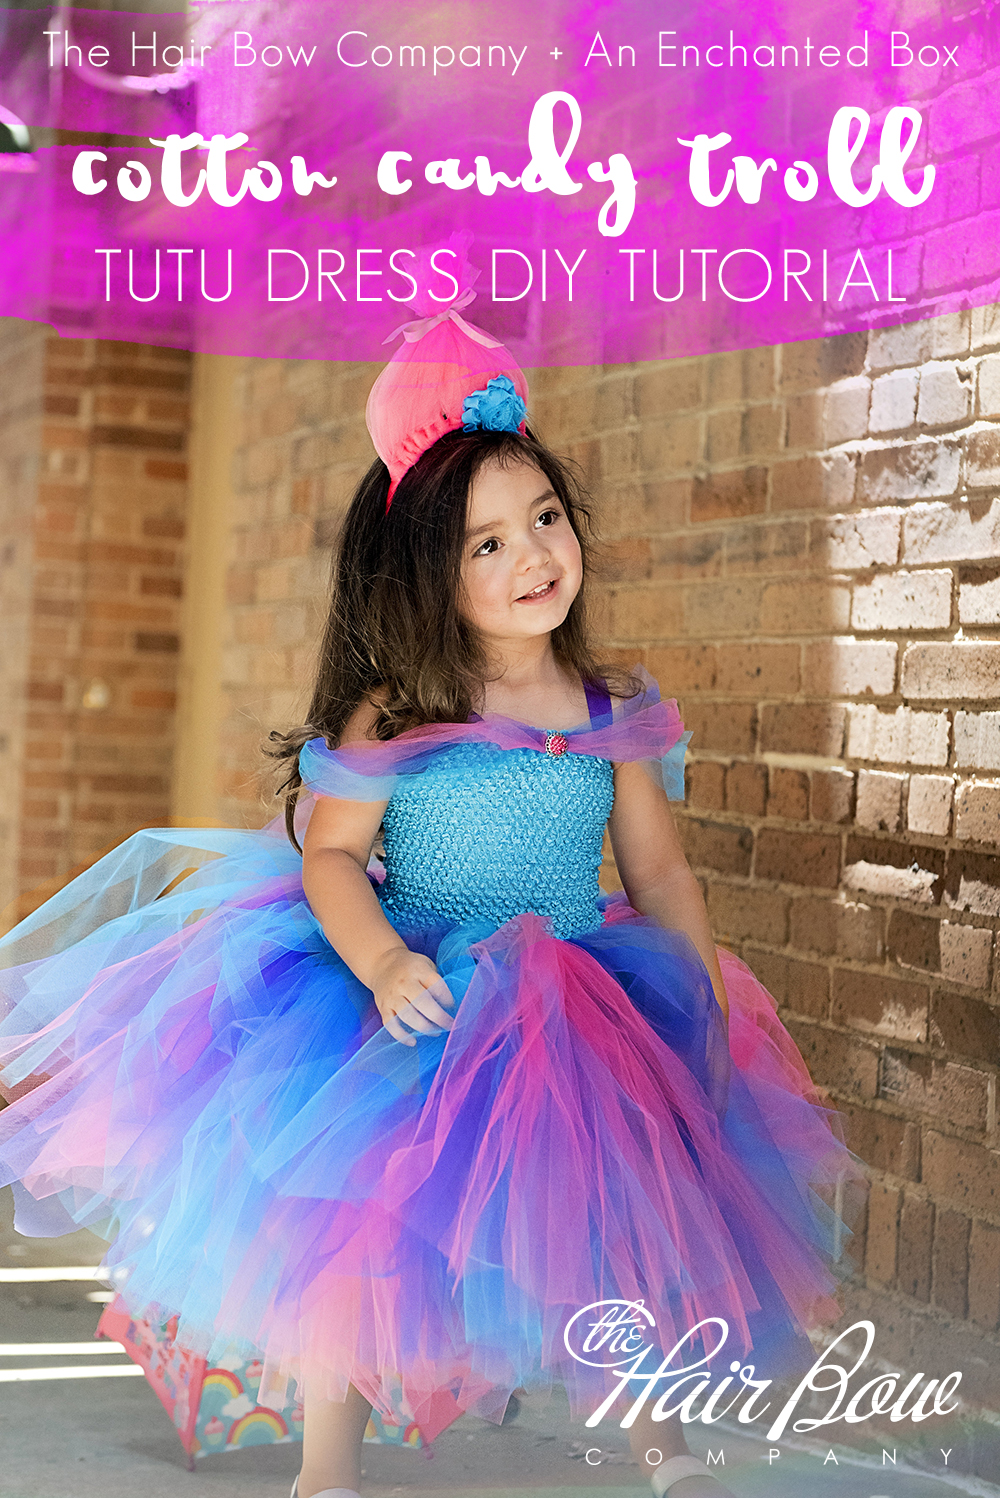 Cotton Candy Troll Tutu Dress Diy The Hair Bow Company